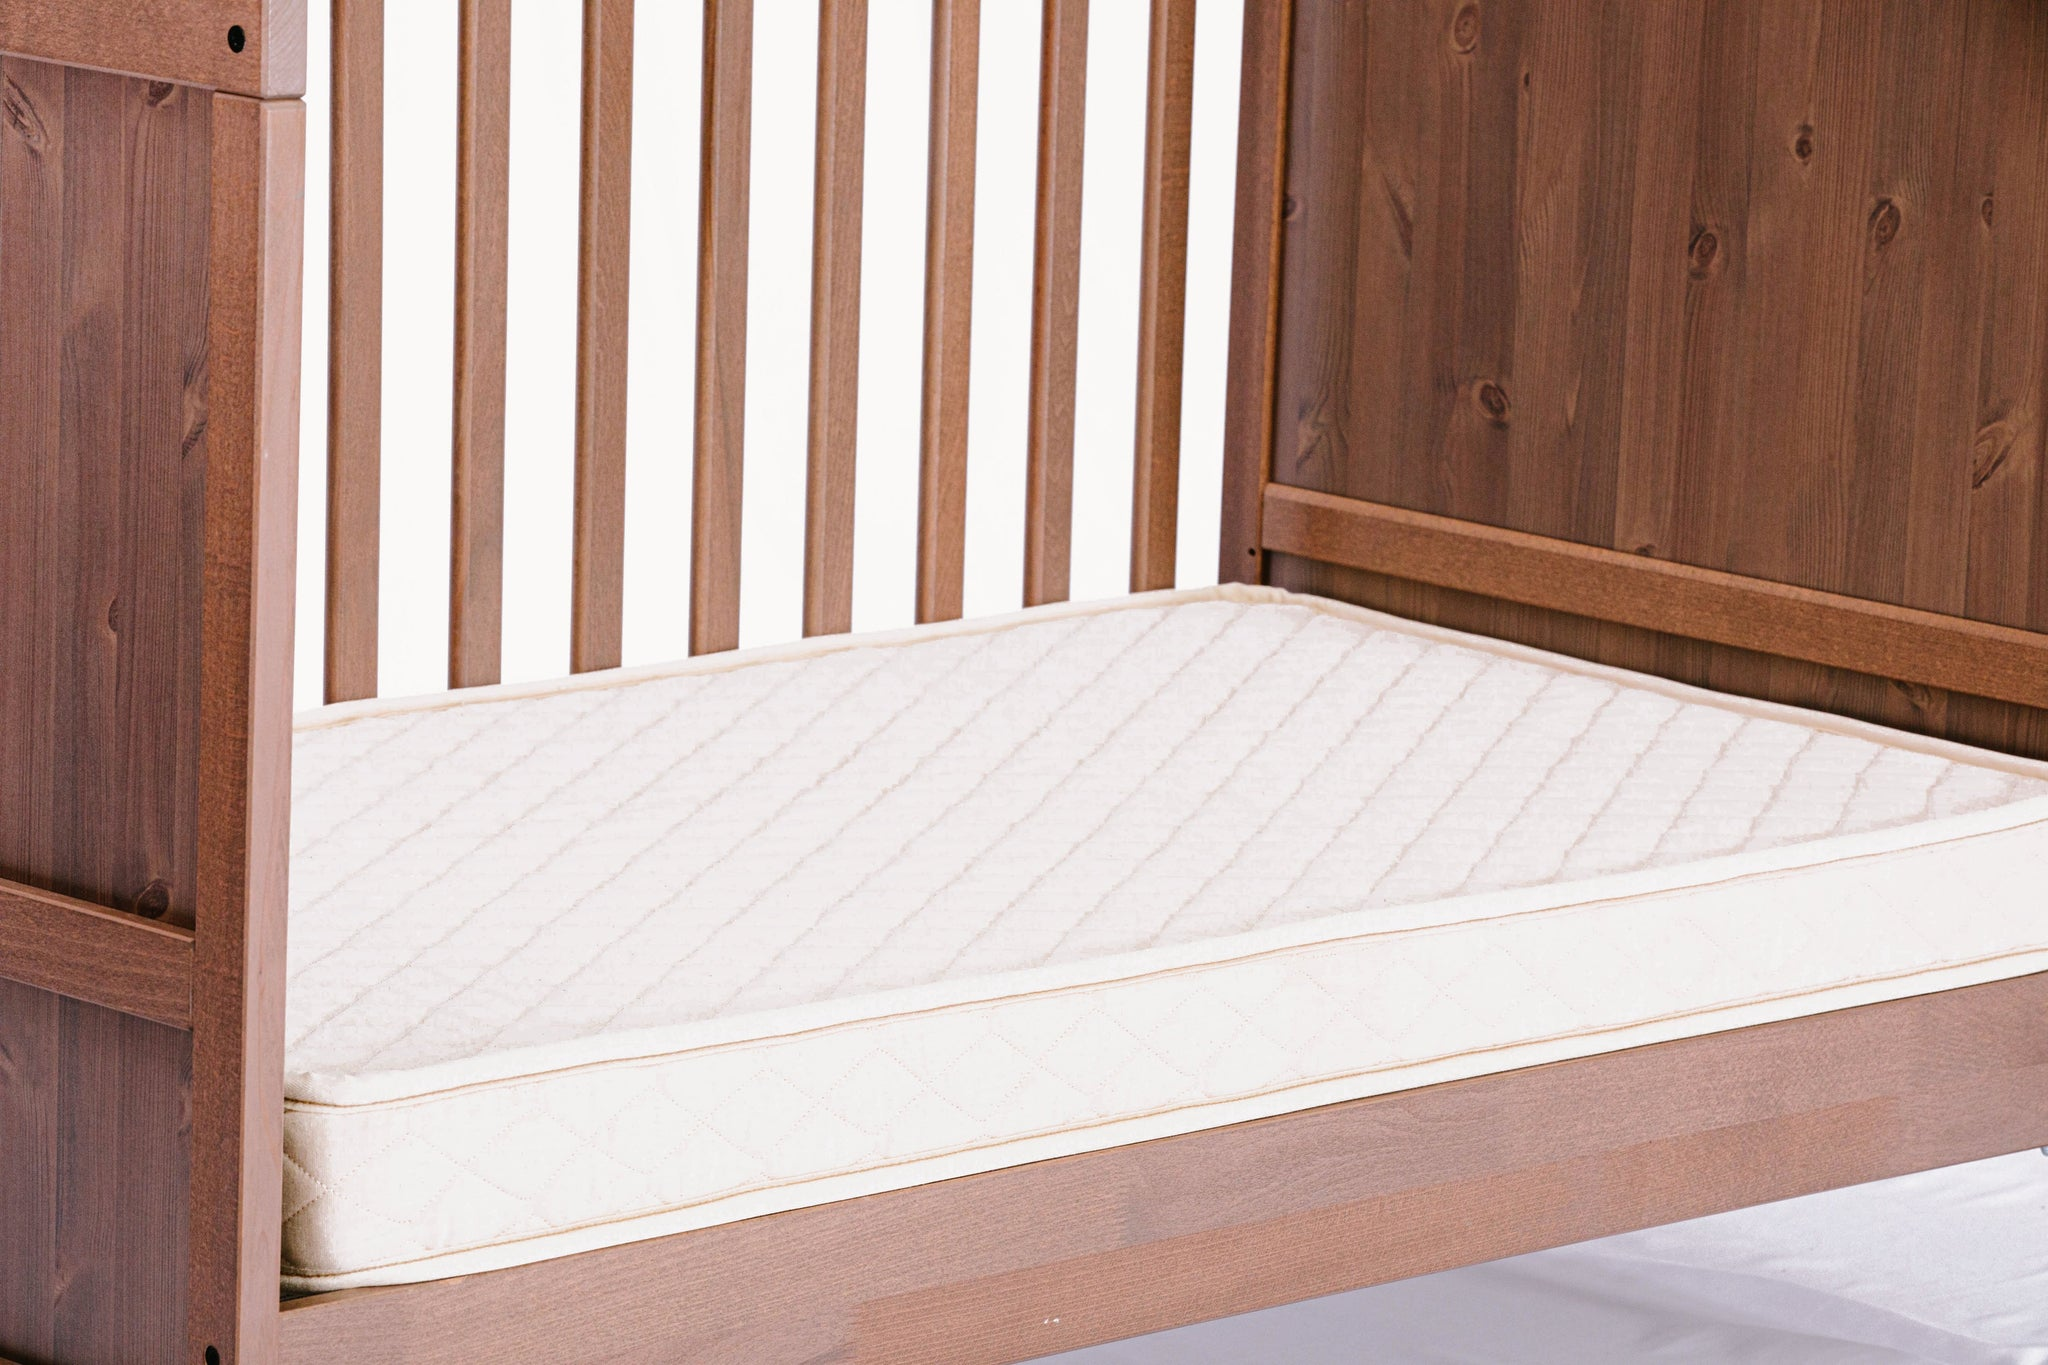 The Adore Crib Mattress | pjs sleep and home